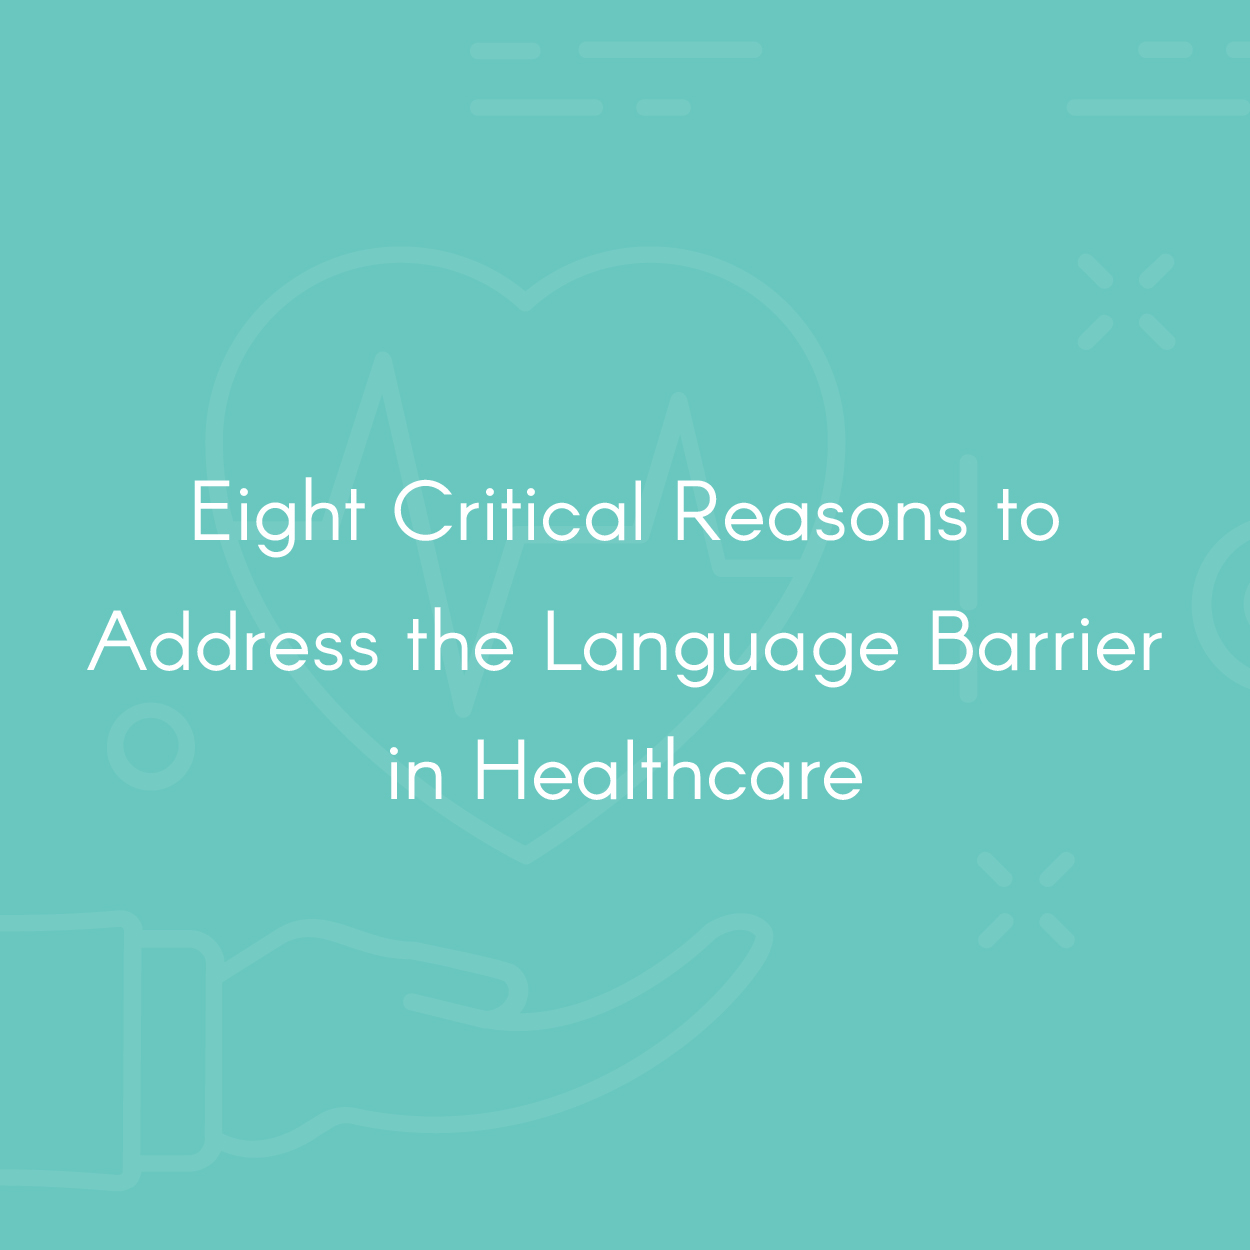 Eight Critical Reasons to Address  the Language Barrier in Healthcare-13.jpg